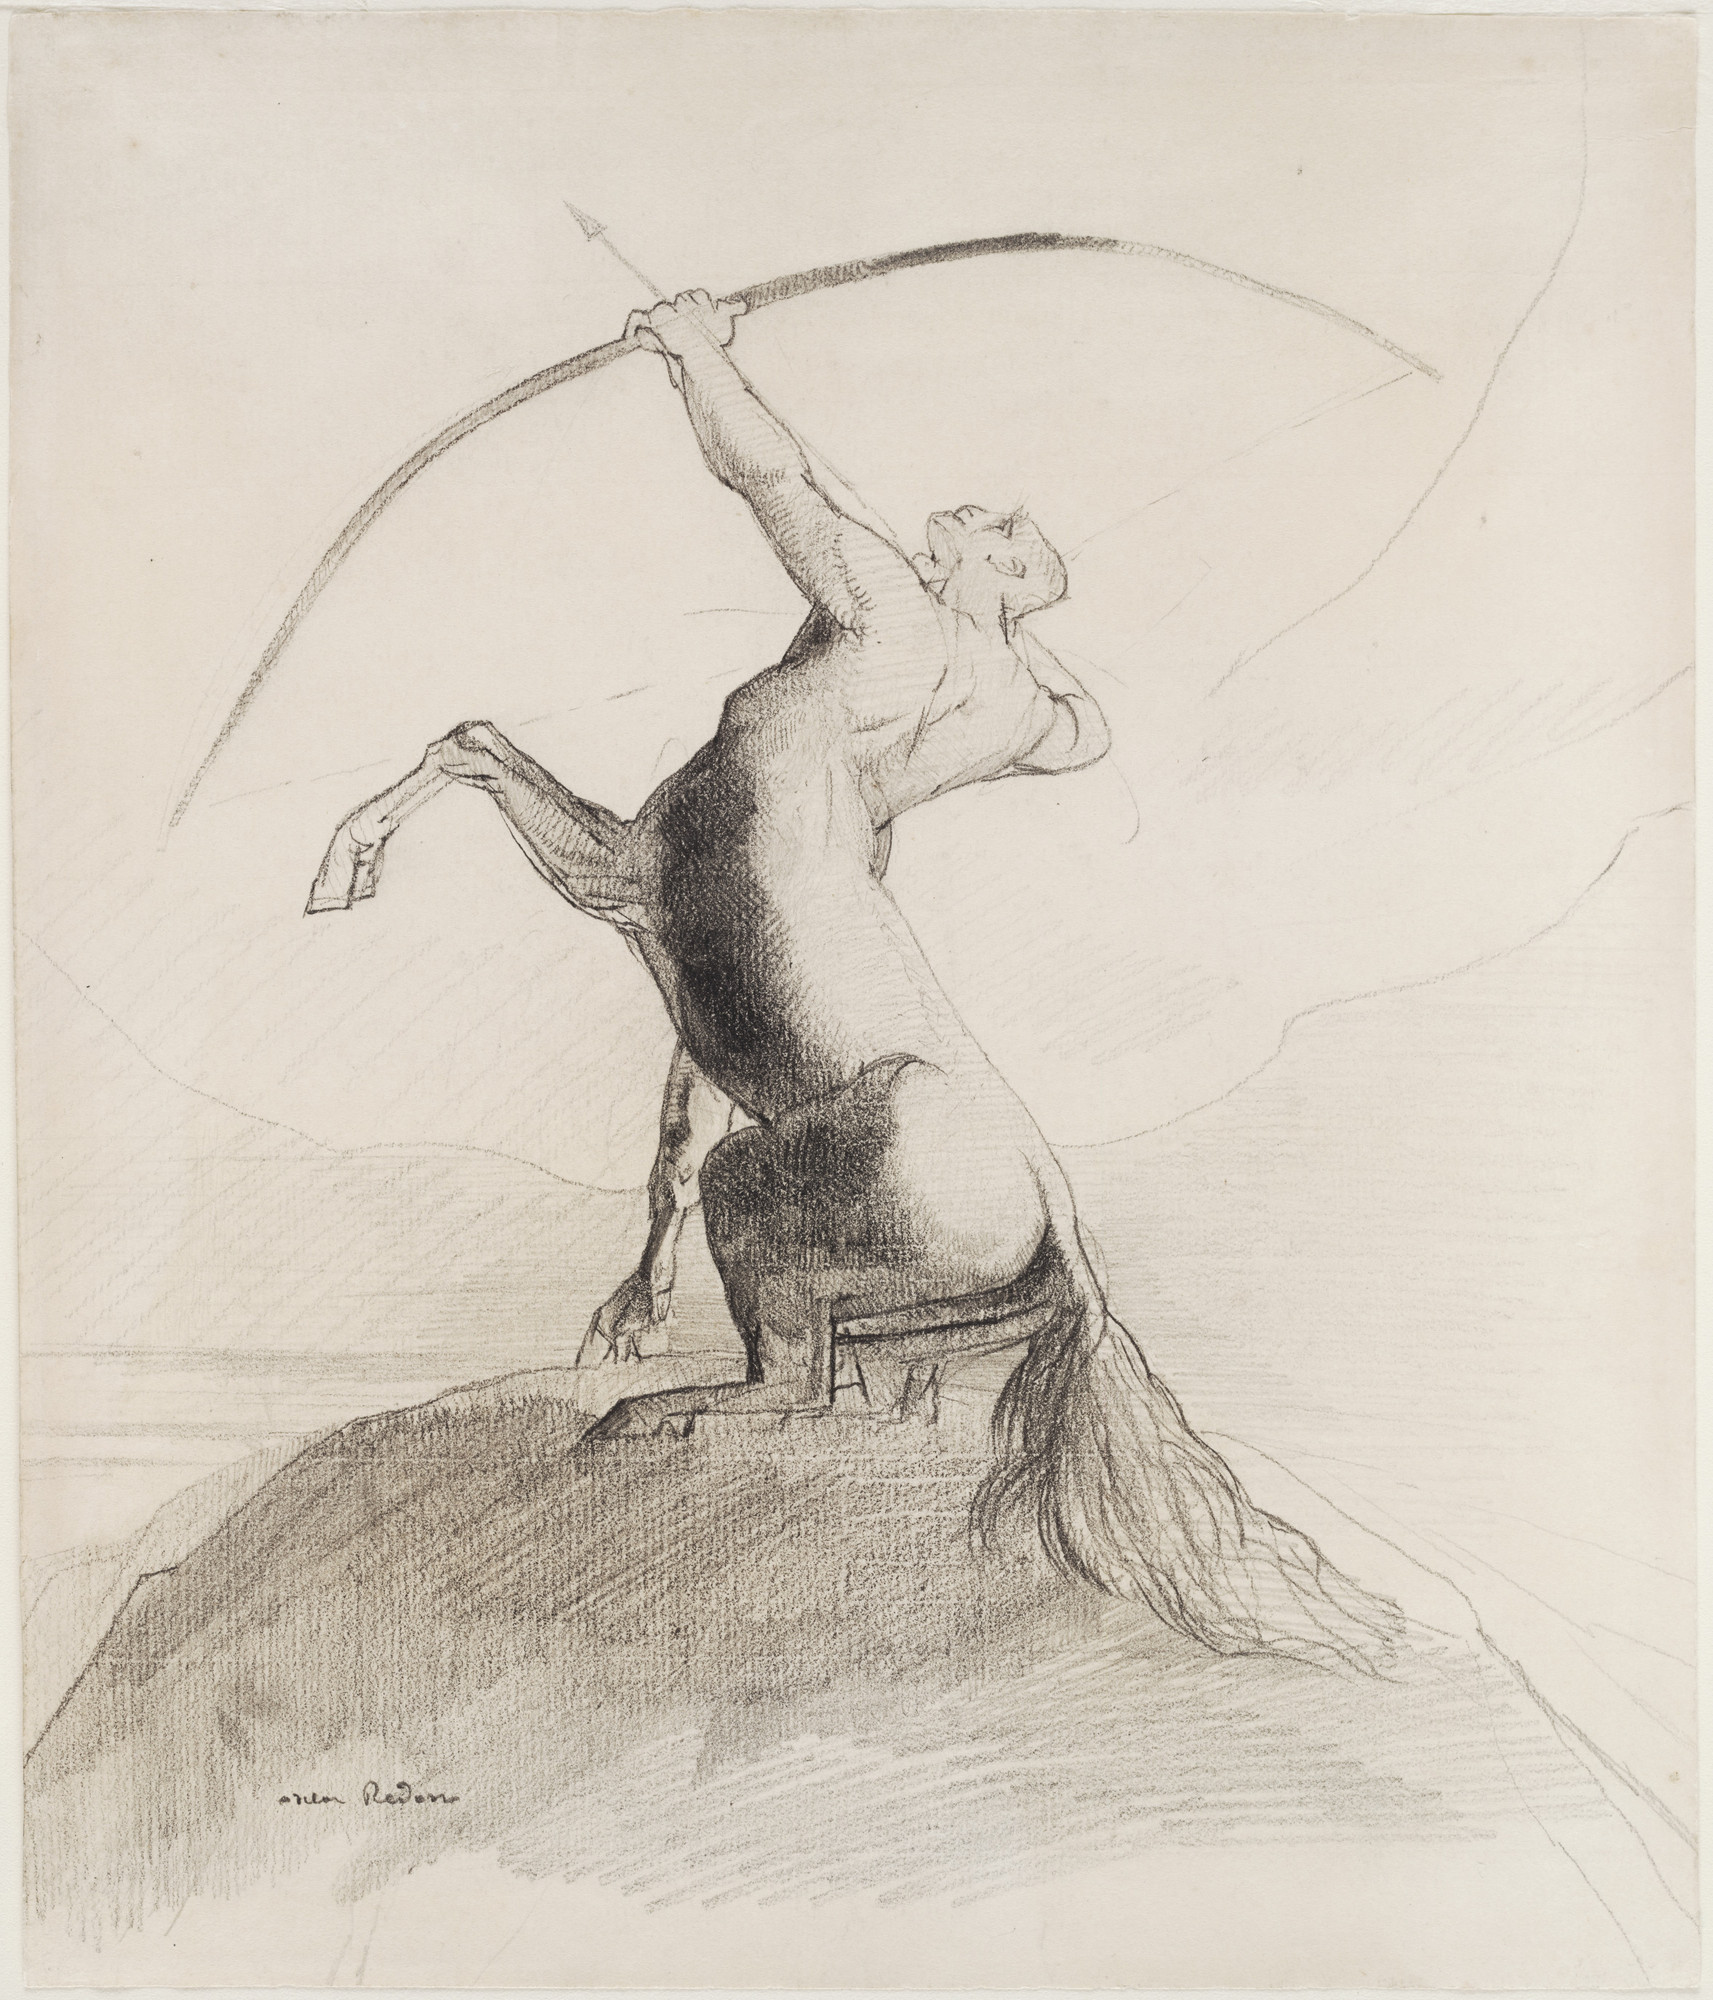 Odilon Redon. Centaur Aiming at the Clouds. (c. 1875)